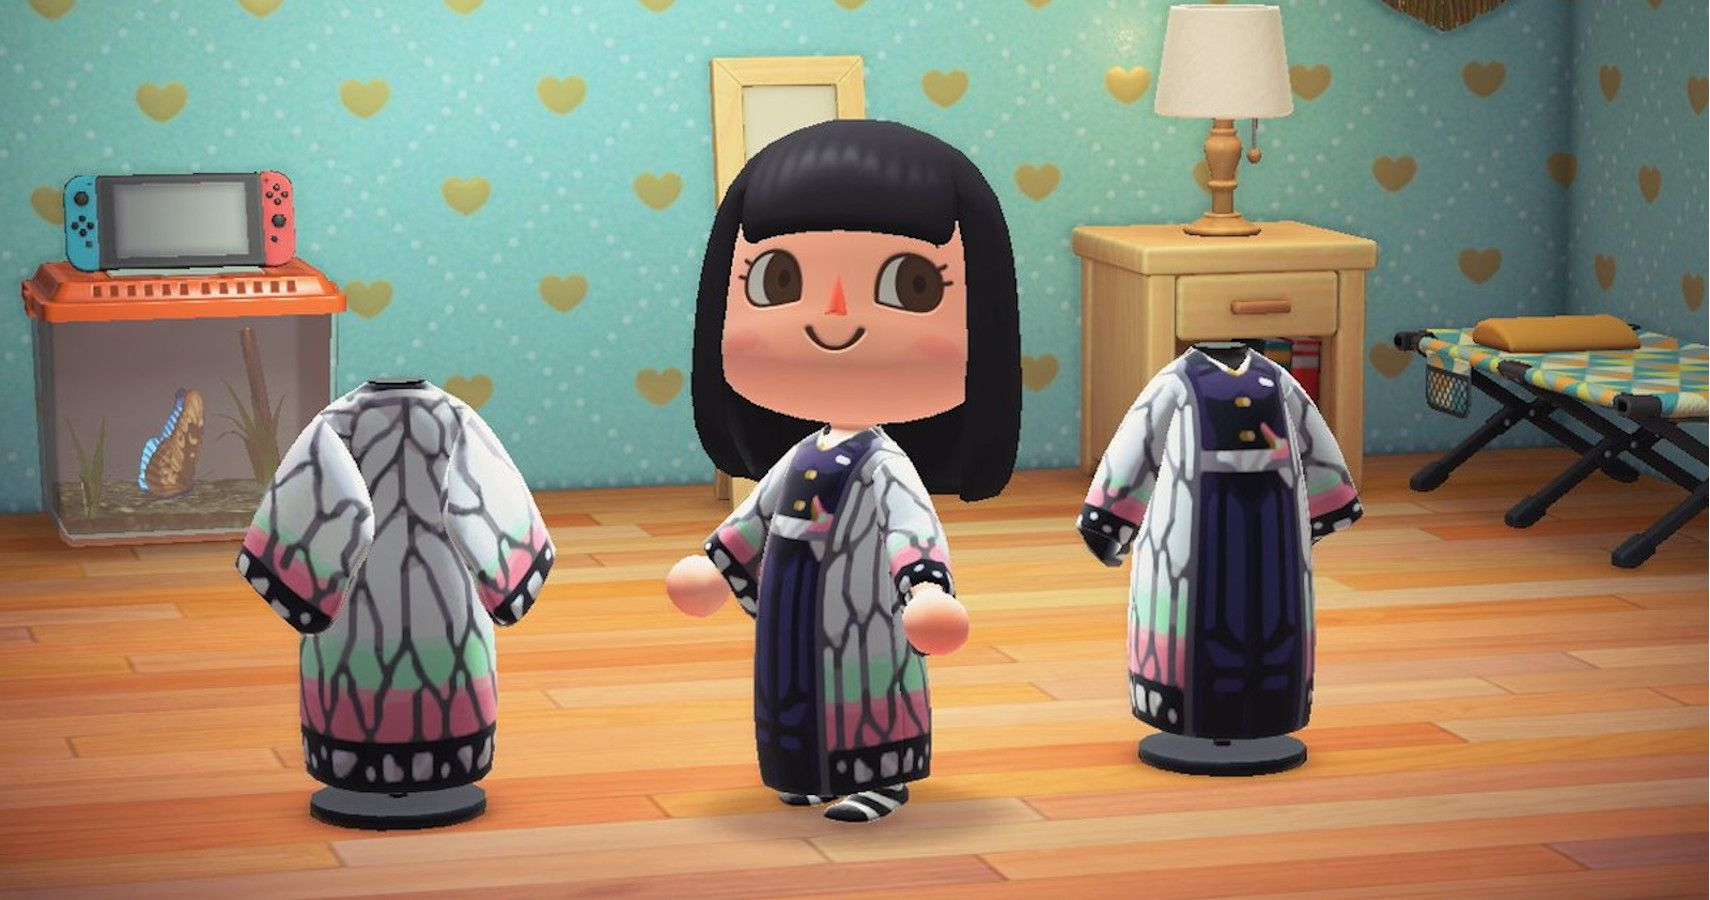 Animal Crossing New Horizons Codes For Demon Slayer Outfits